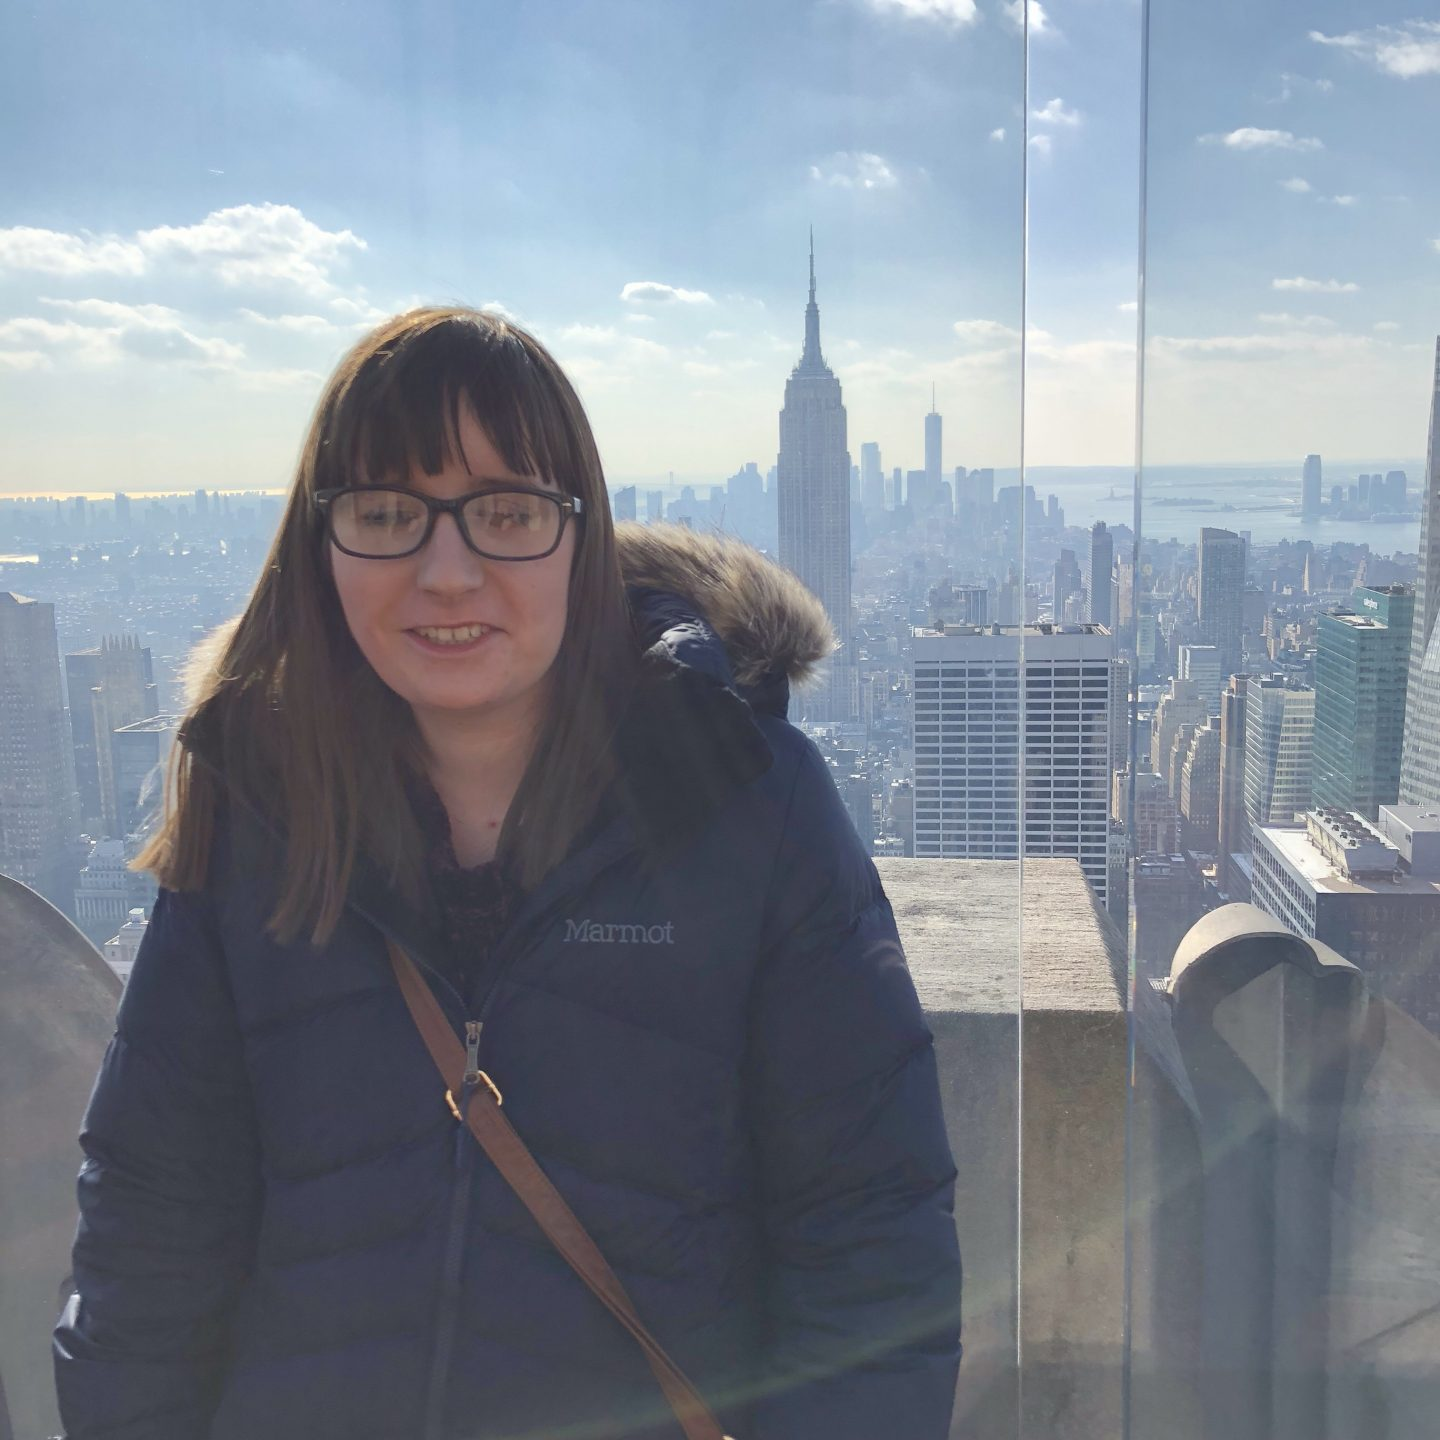 A photo of Holly at the top of the rock